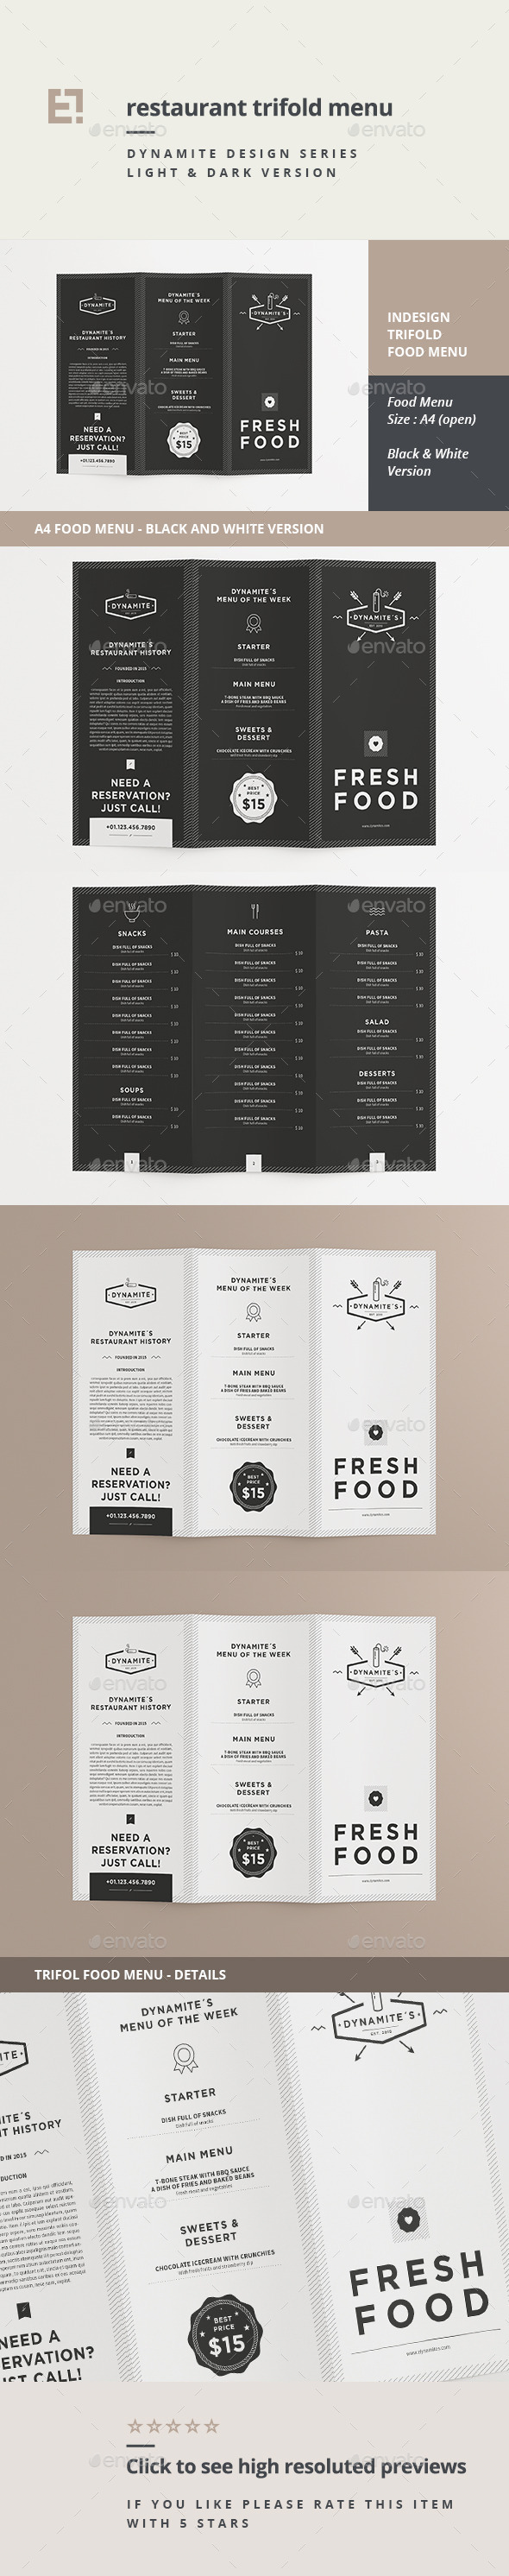 GraphicRiver Restaurant Trifold Menu 11175731